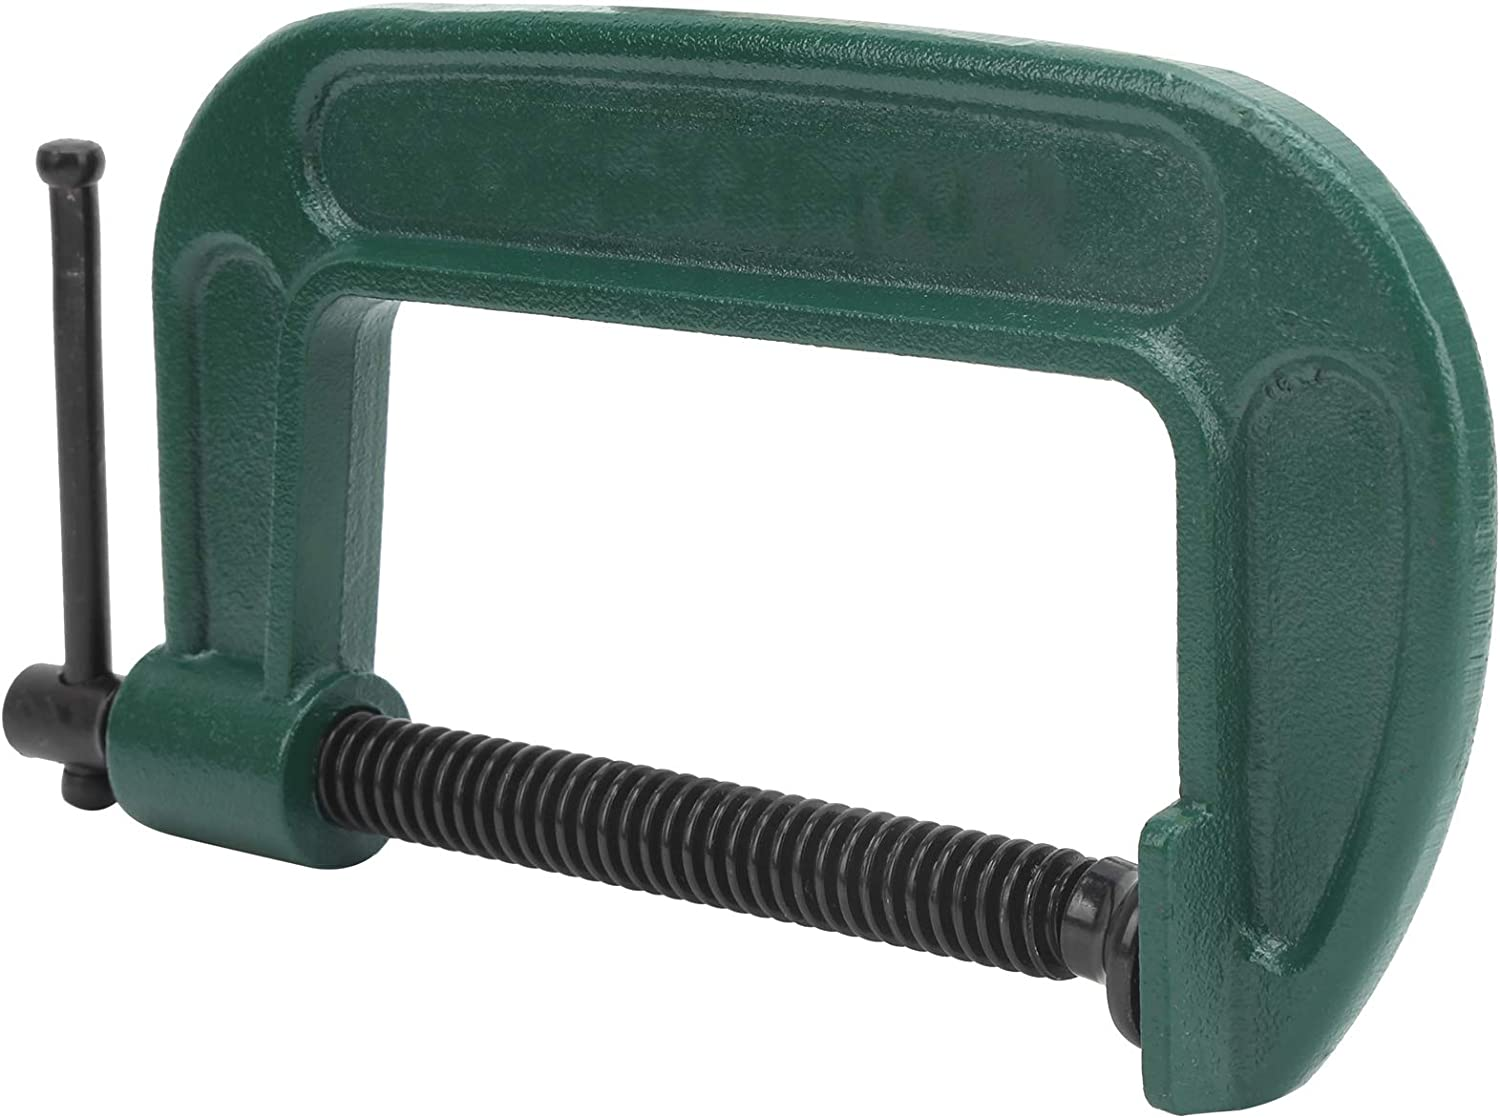 G Clamp Price Challenge the lowest price of Japan reduction Clip 2.8in Clamping Depth 4.6in C-Cla Length